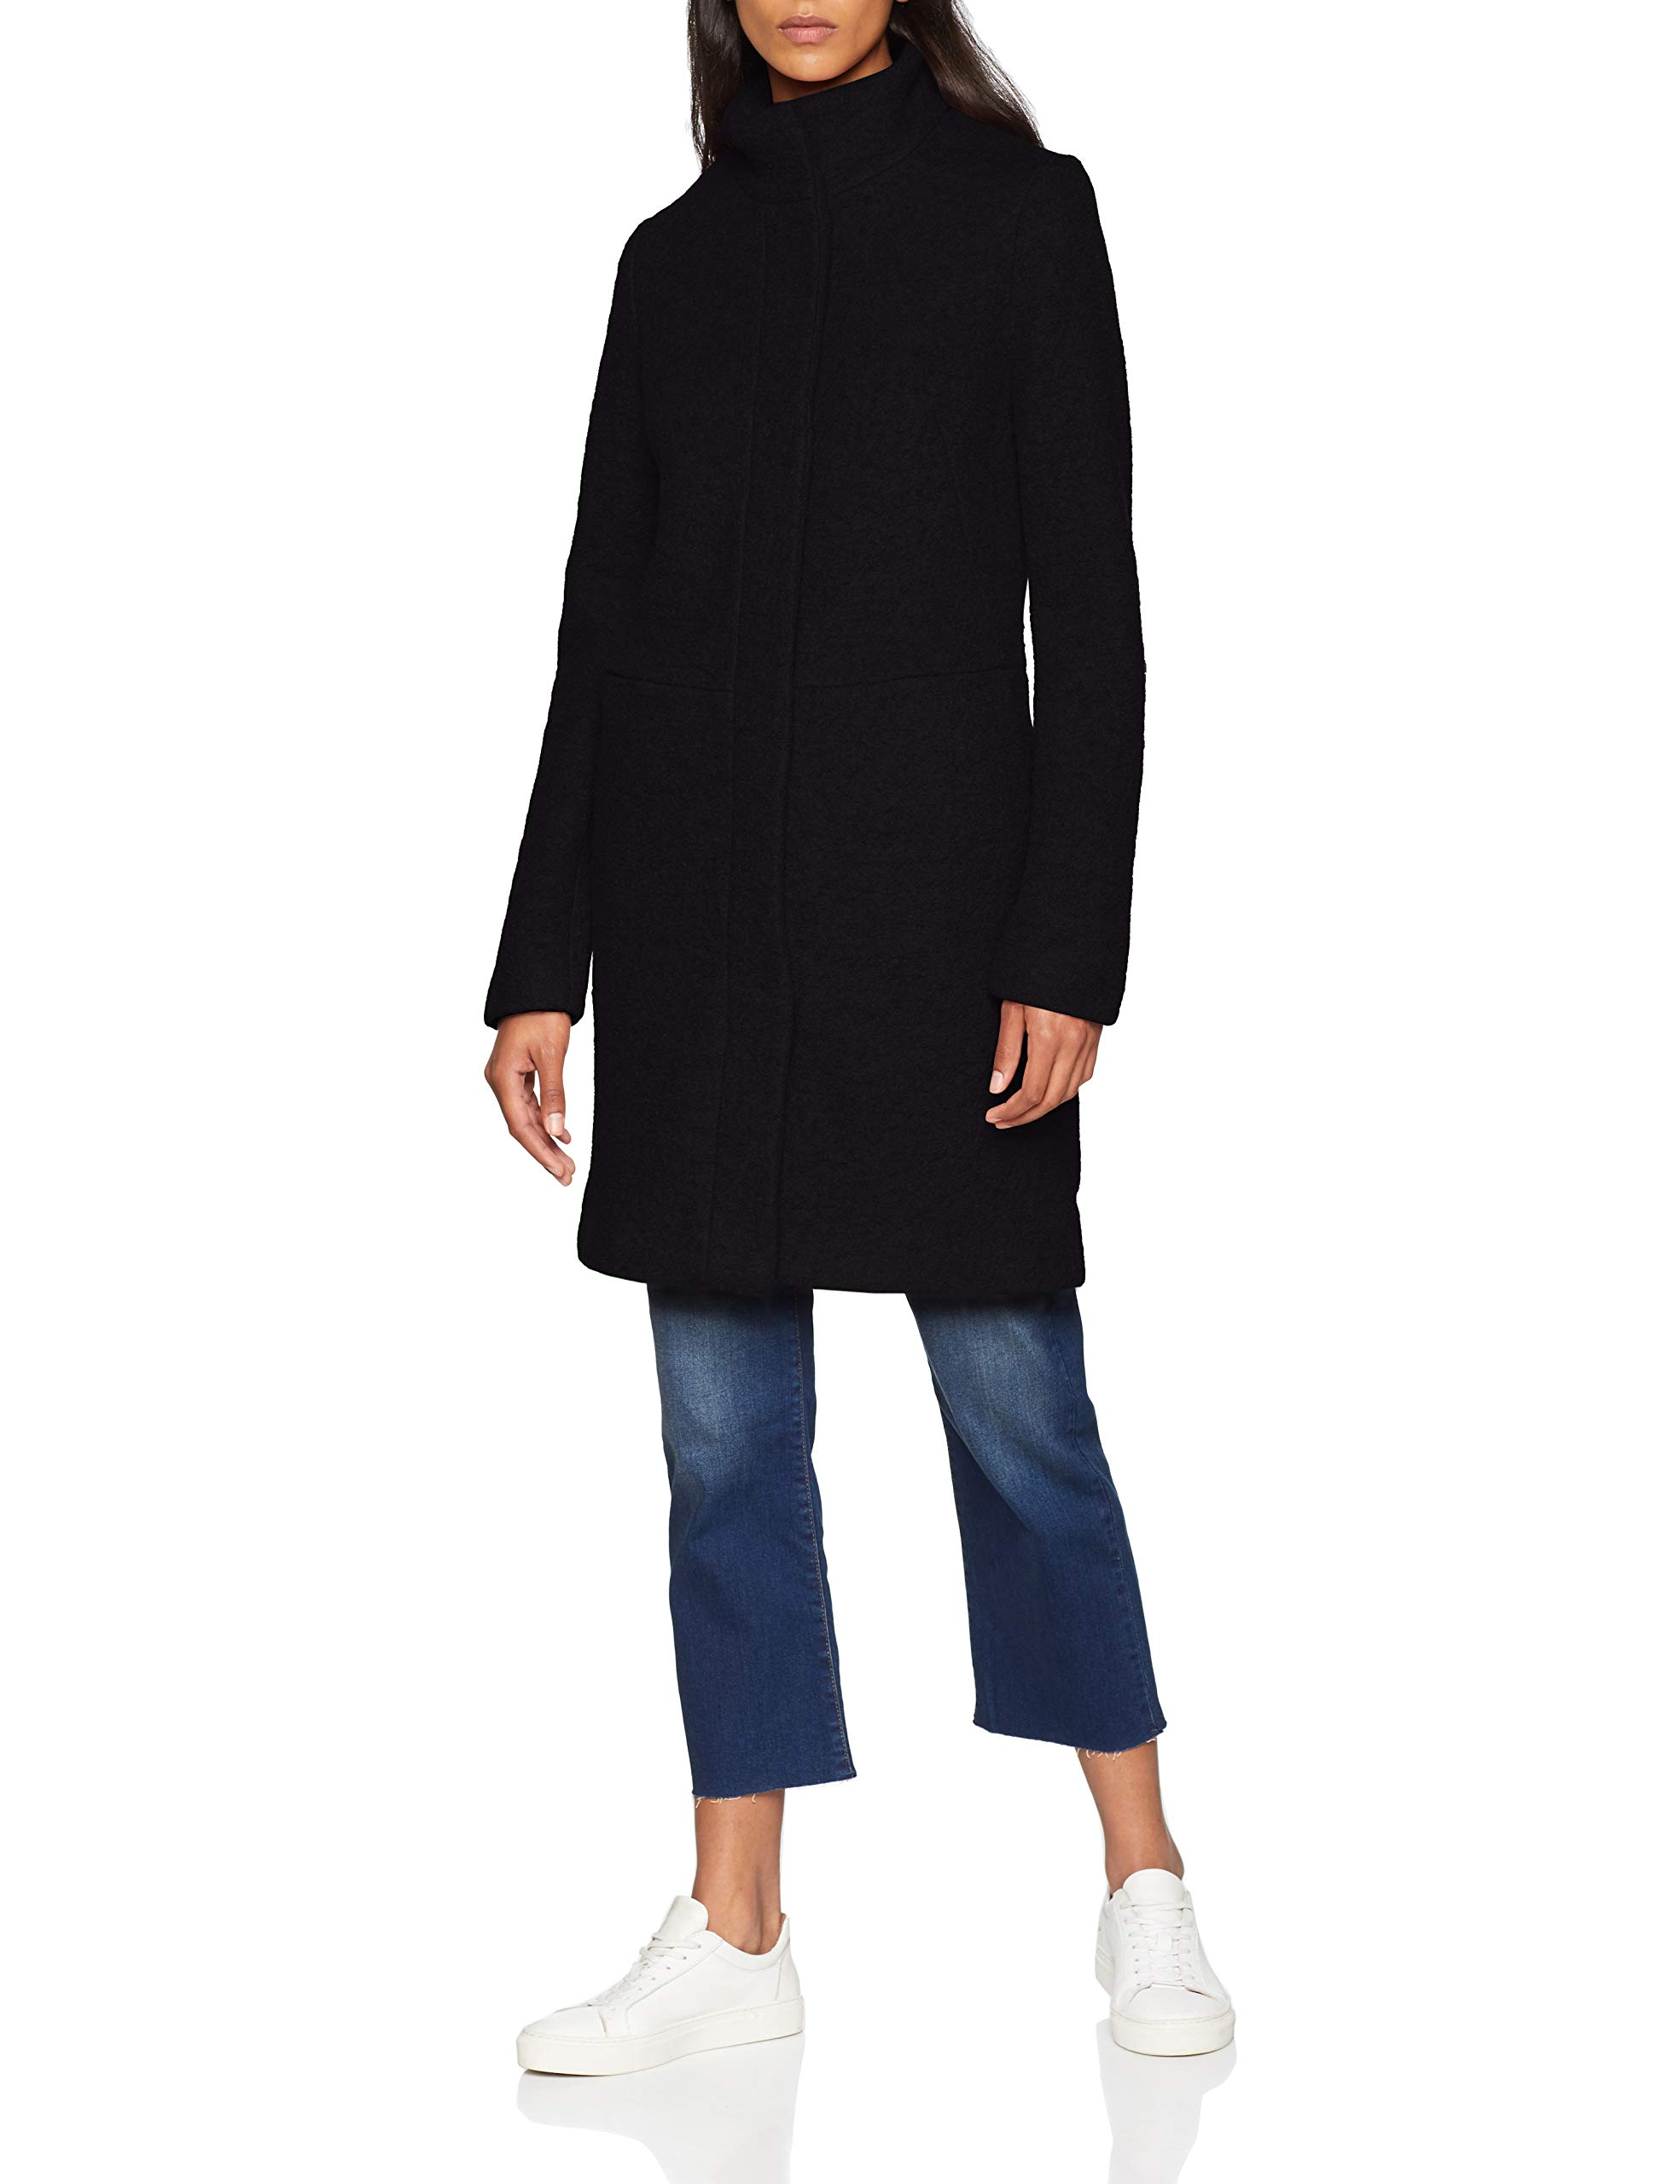 Coat noos Fabricant36Femme Vialanis Clothes Black38taille Vila ManteauNoir bf76Ygy